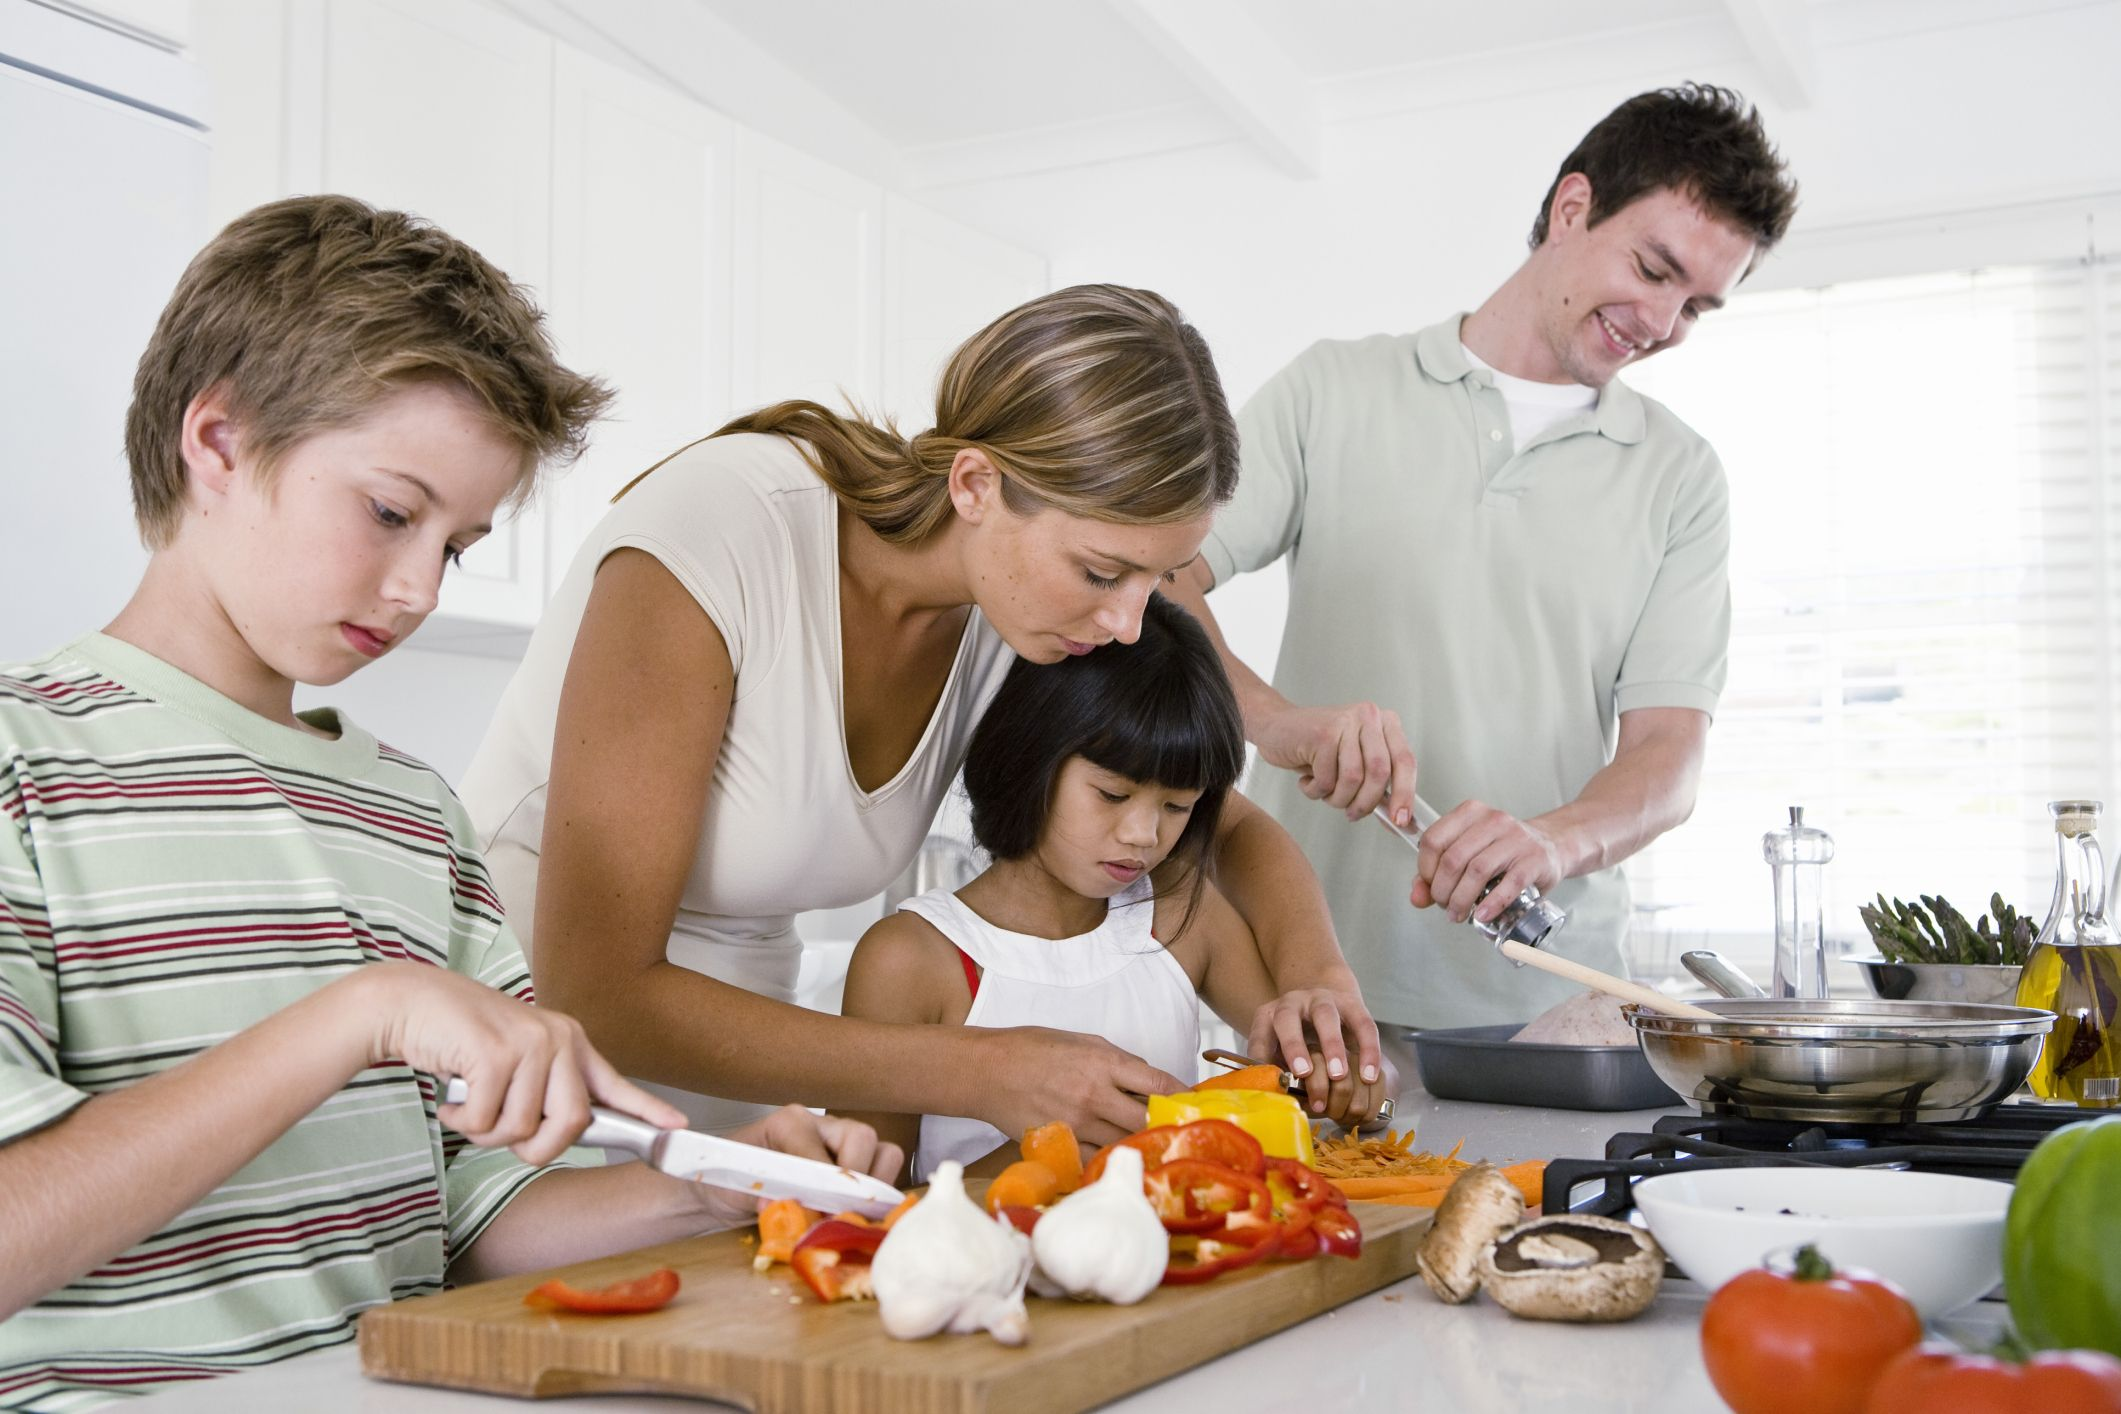 a personal account of enjoying cooking and bonding with my parents Cooking meals, doing laundry, and you turn chores into bonding time while teaching valuable skills the job of a mother isn't to be a personal assistant.